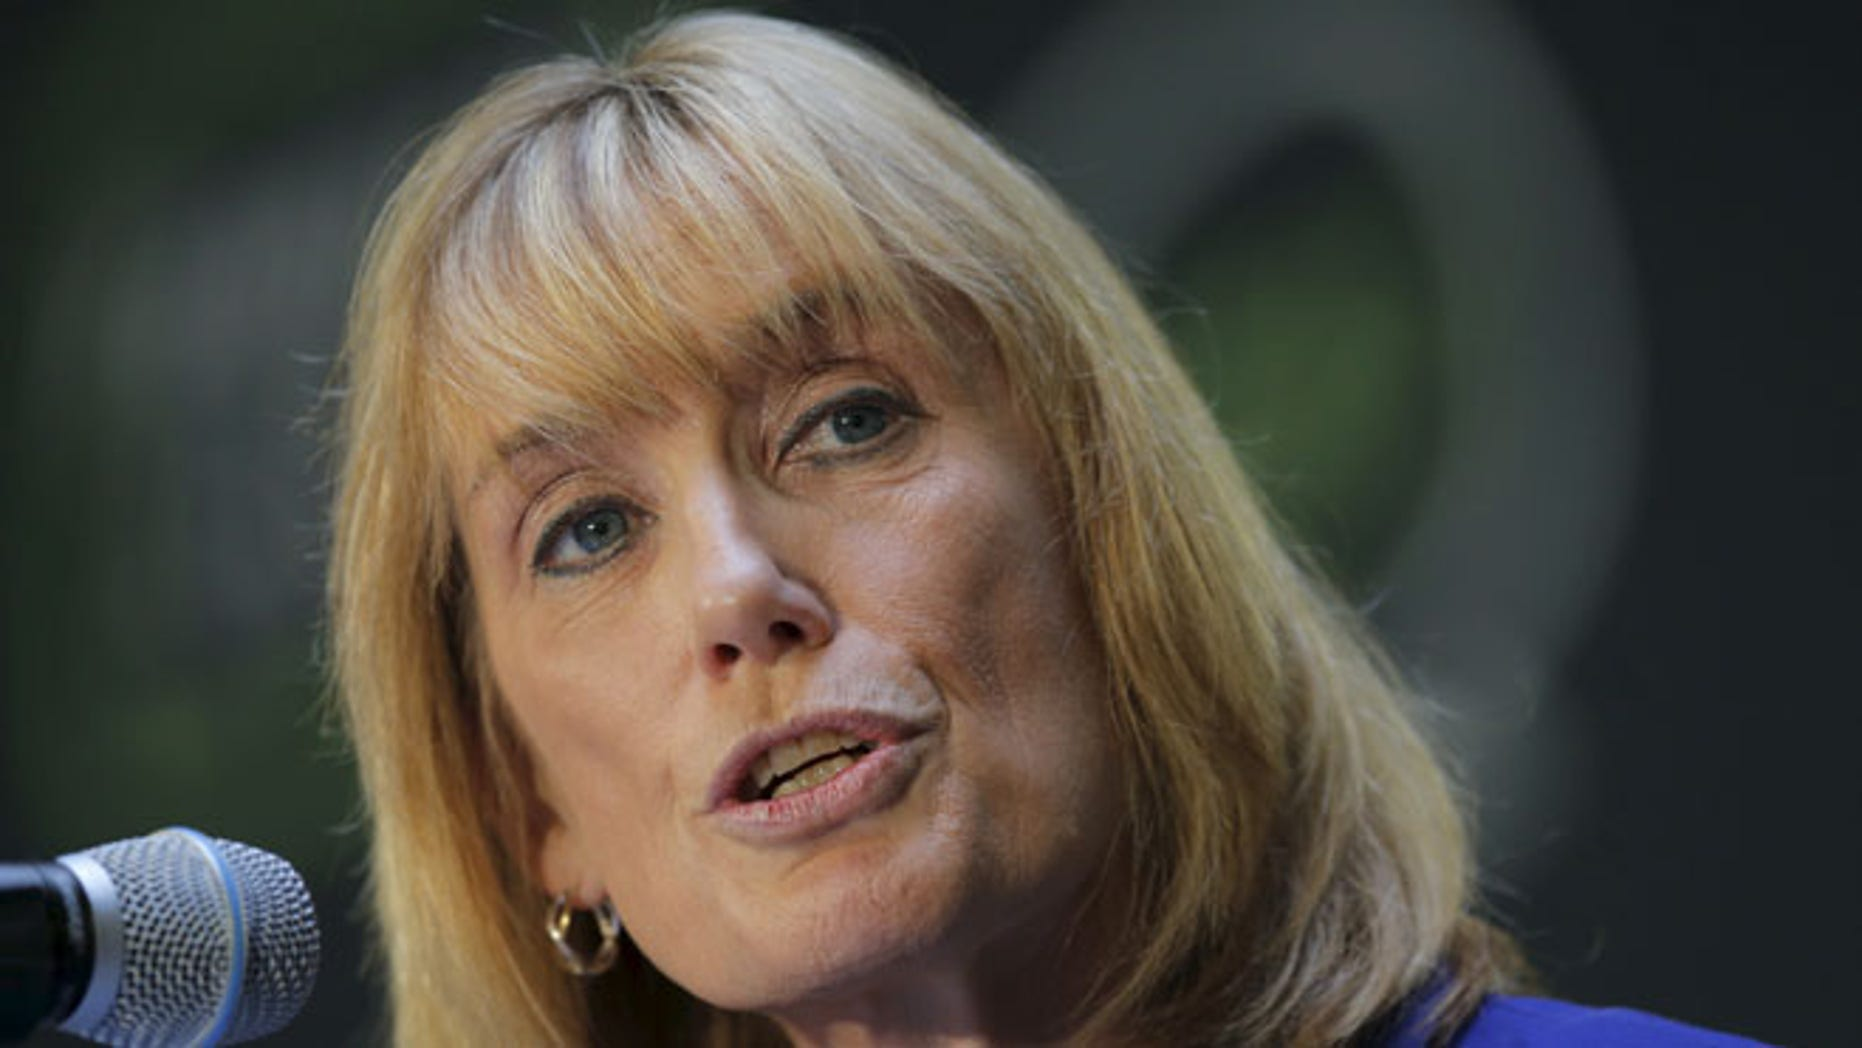 FILE: Oct. 12, 2015: New Hampshire Gov. Maggie Hassan (D) in Manchester, N.H. (REUTERS)